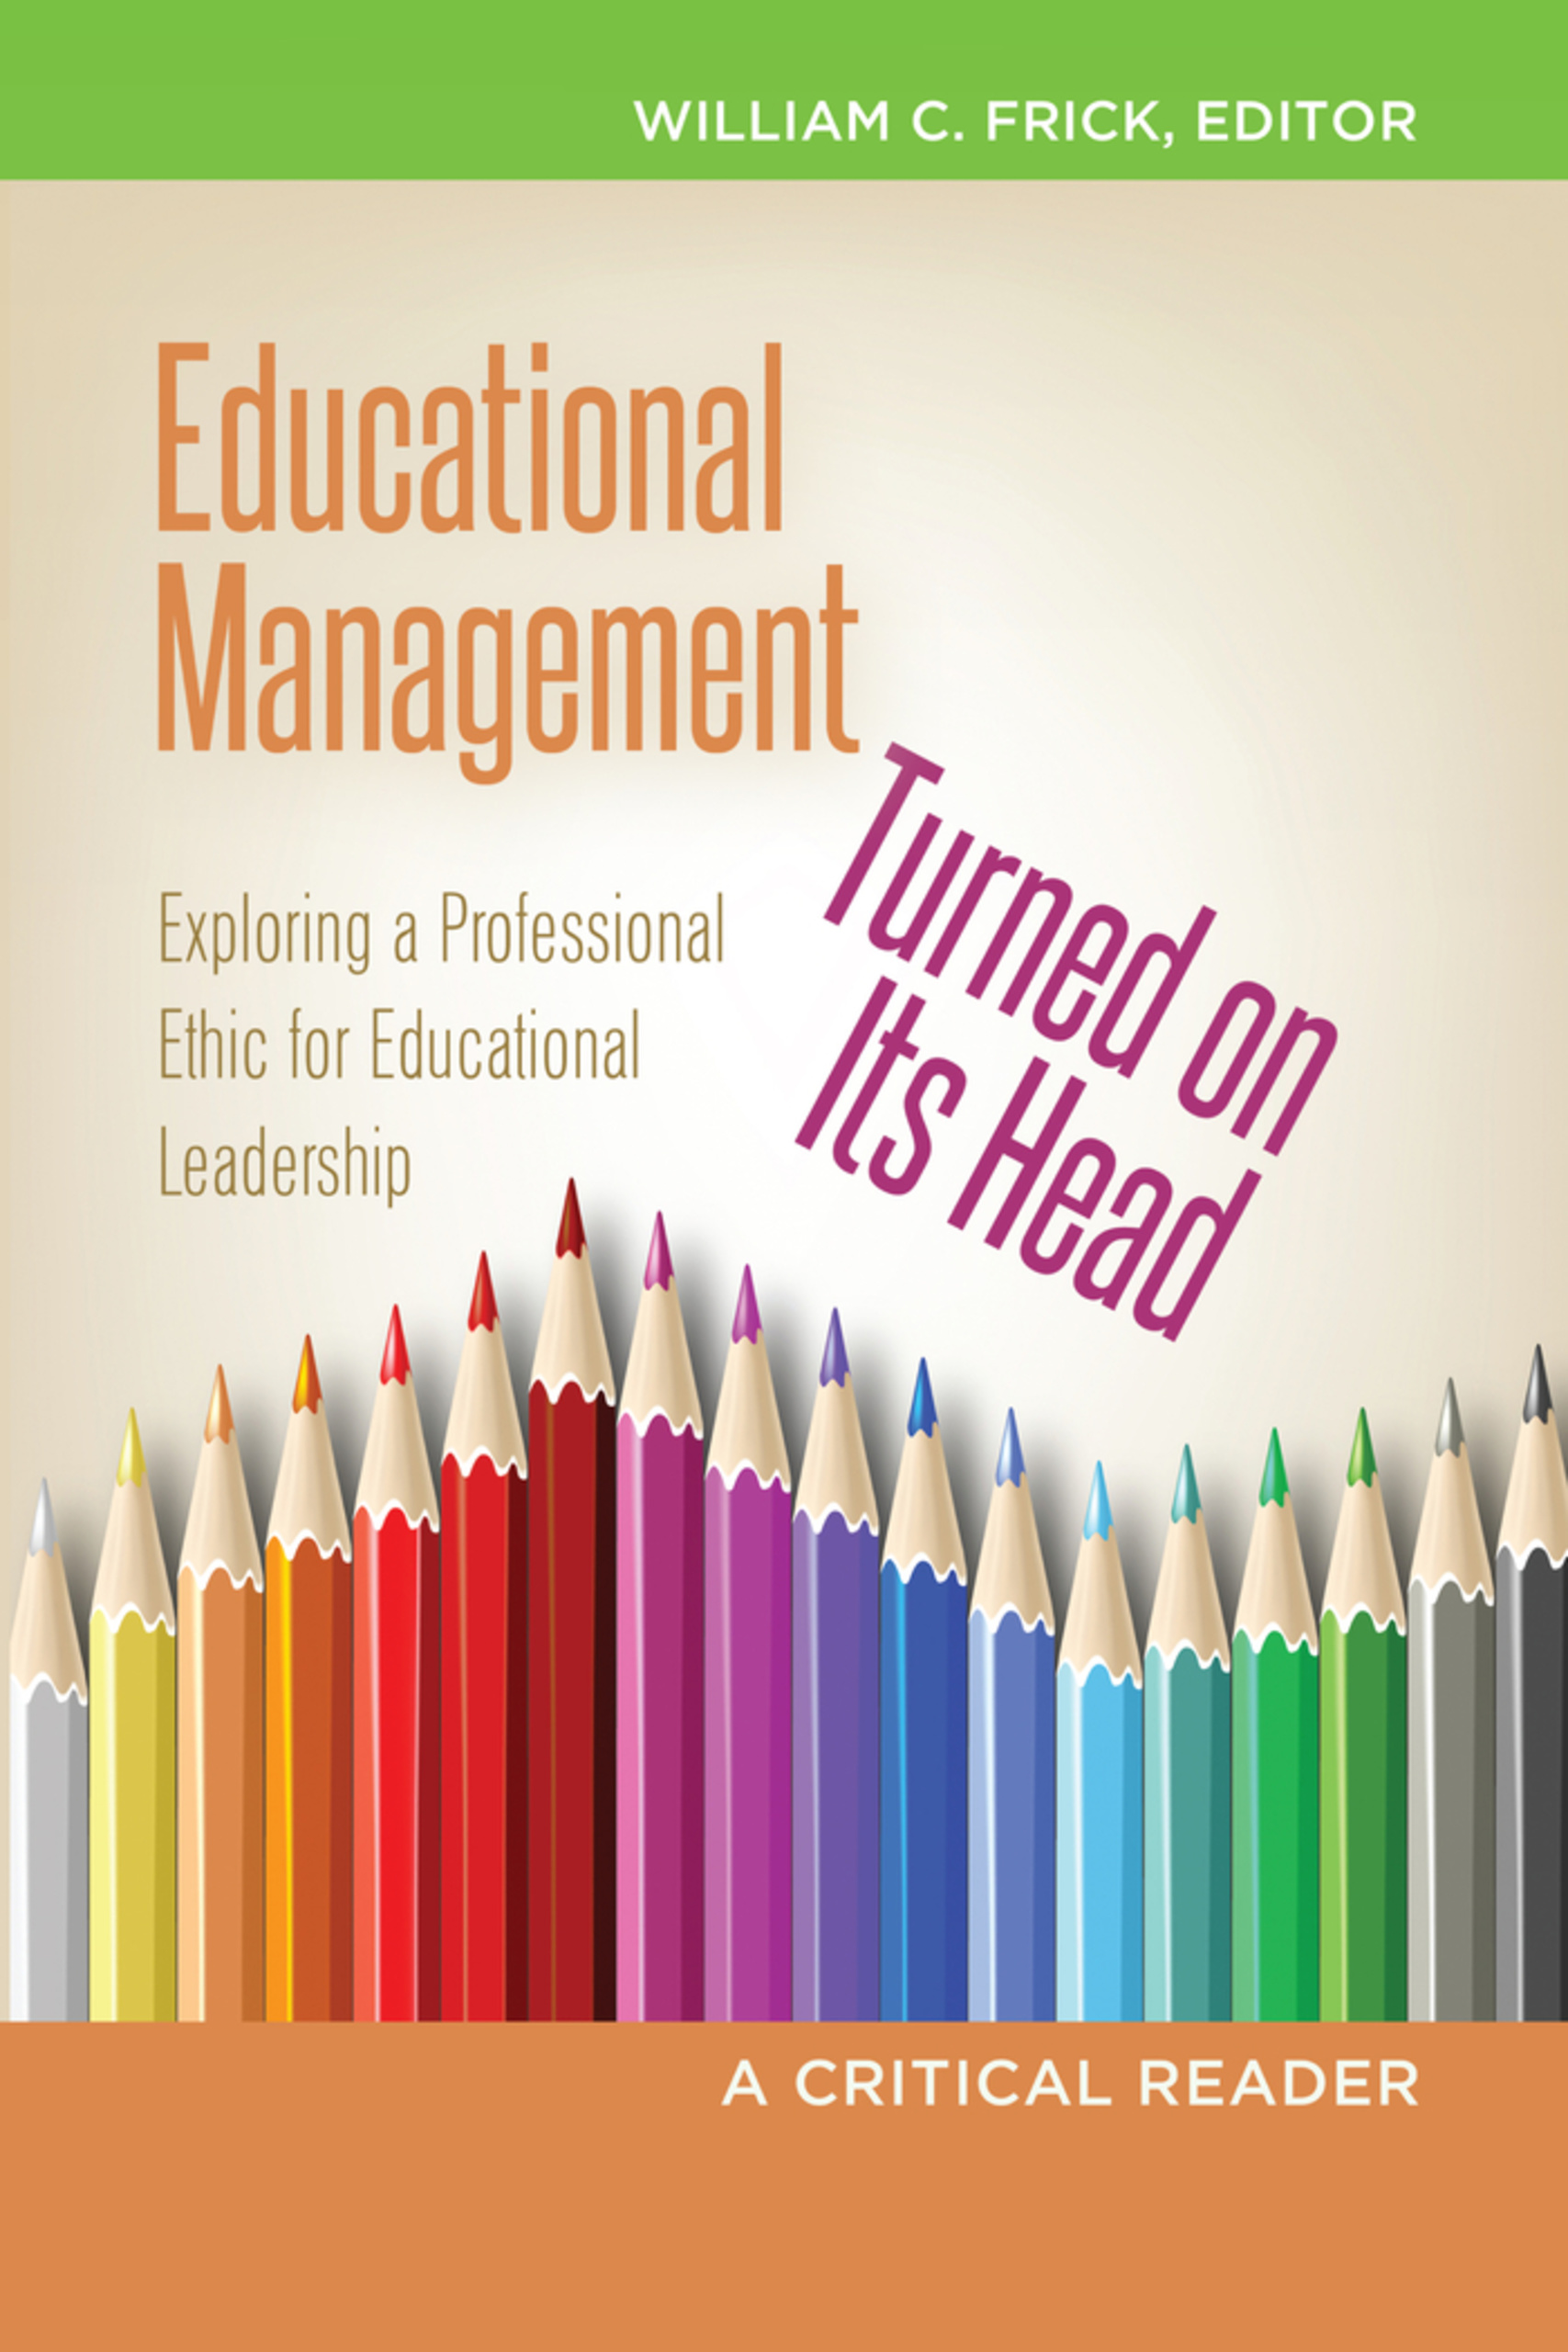 Title: Educational Management Turned on Its Head